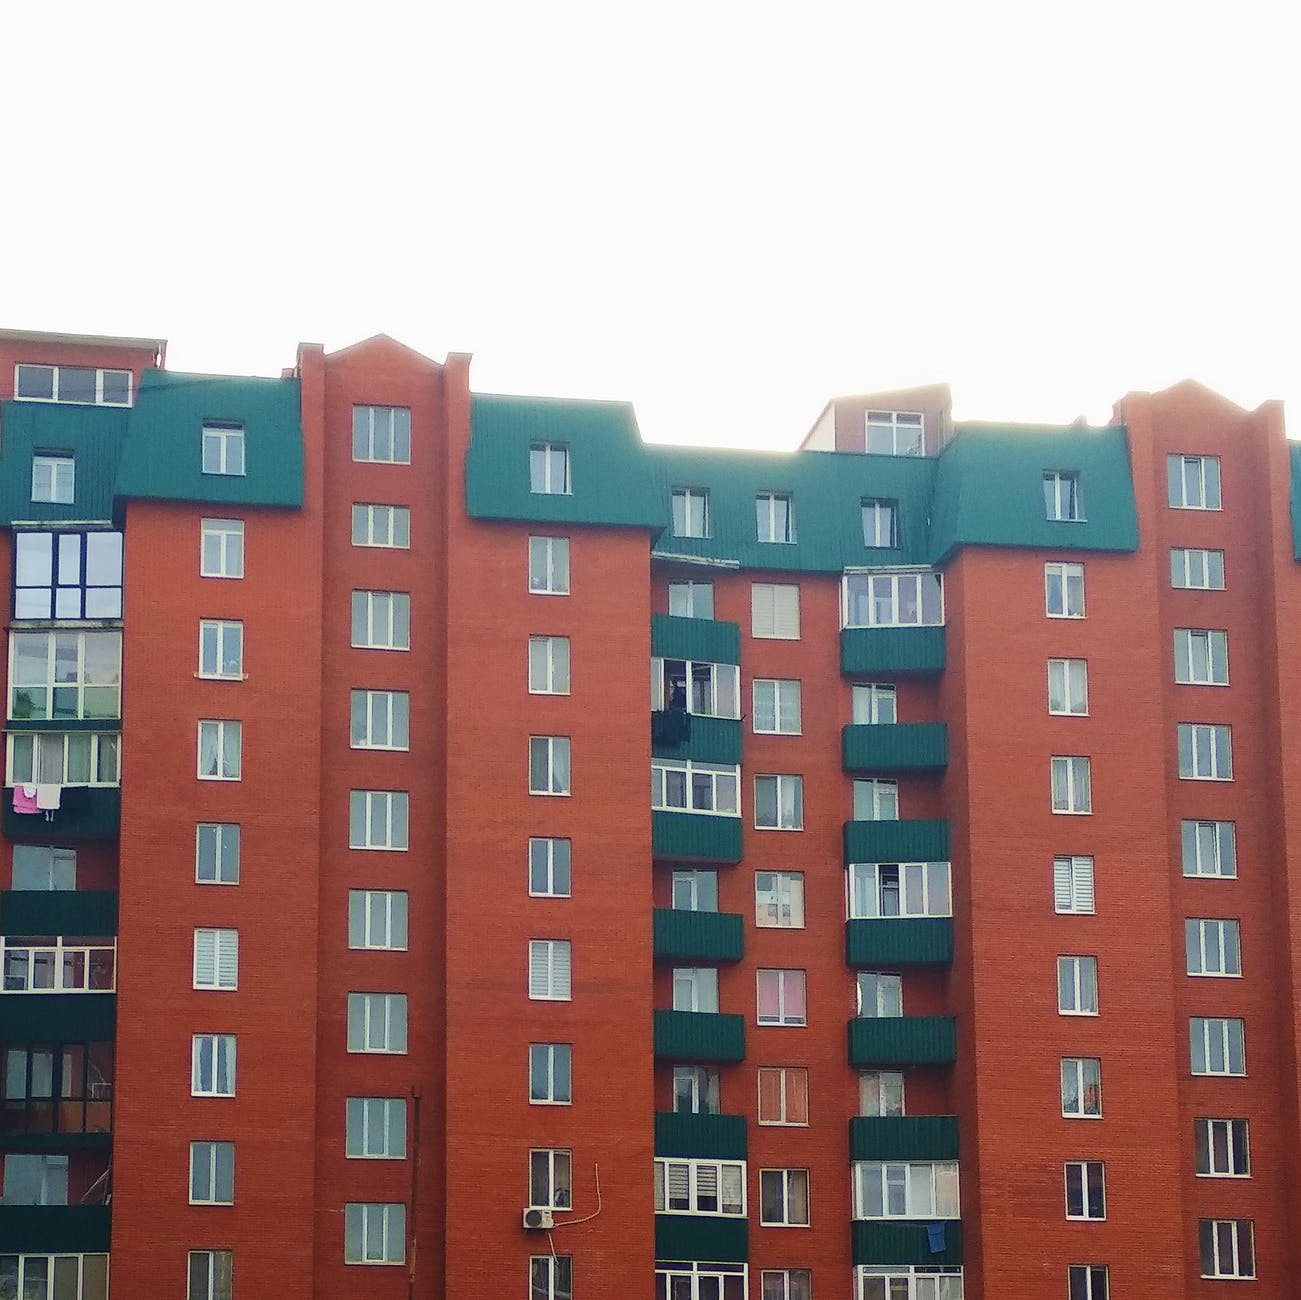 modern block of flats with green roof and balconies